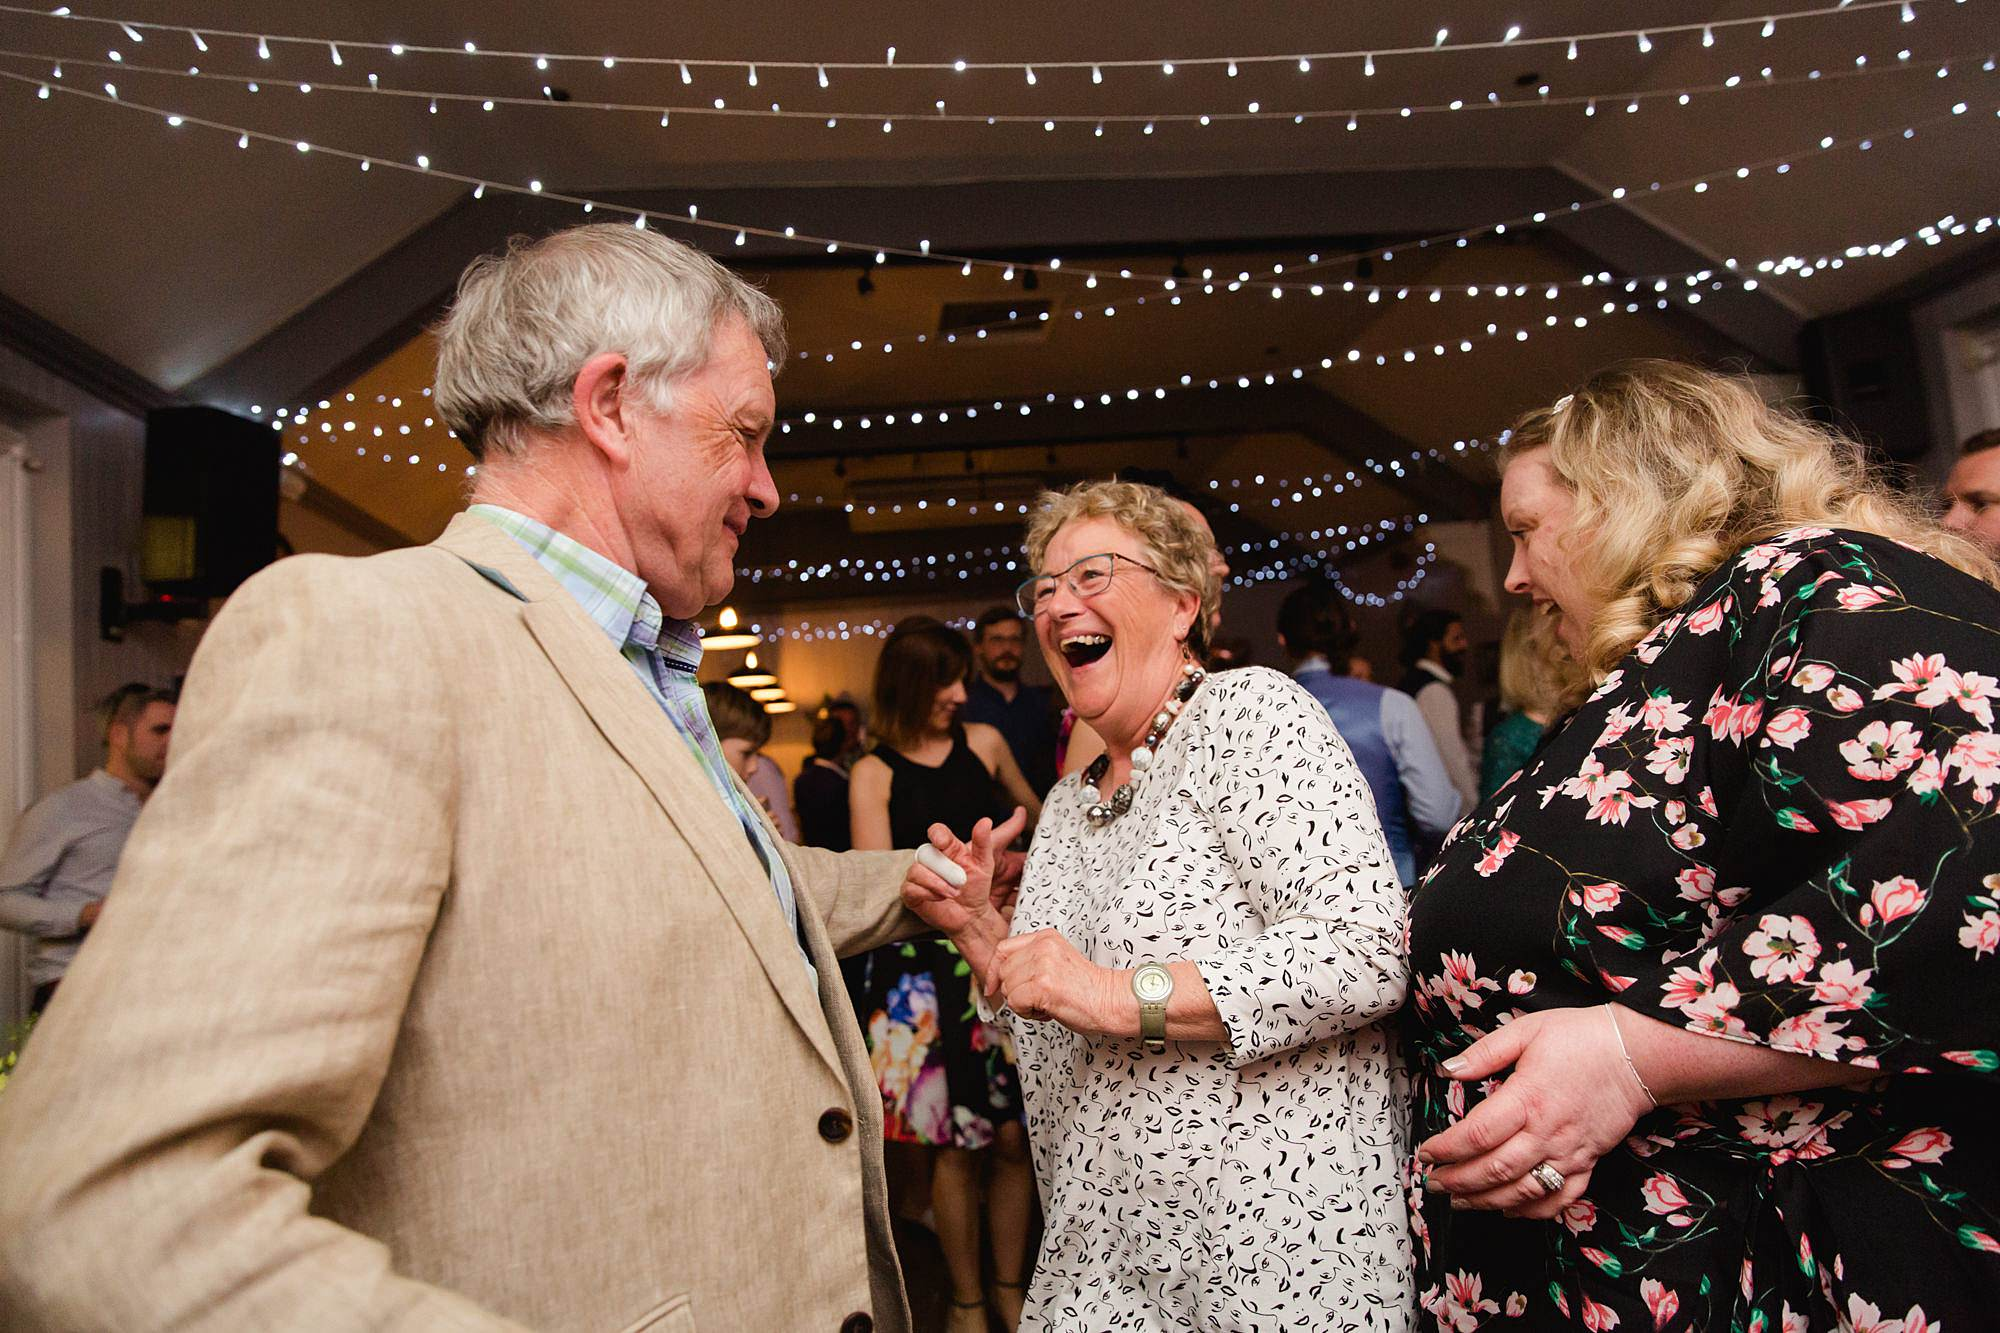 Twickenham wedding photography guests laugh and dance together